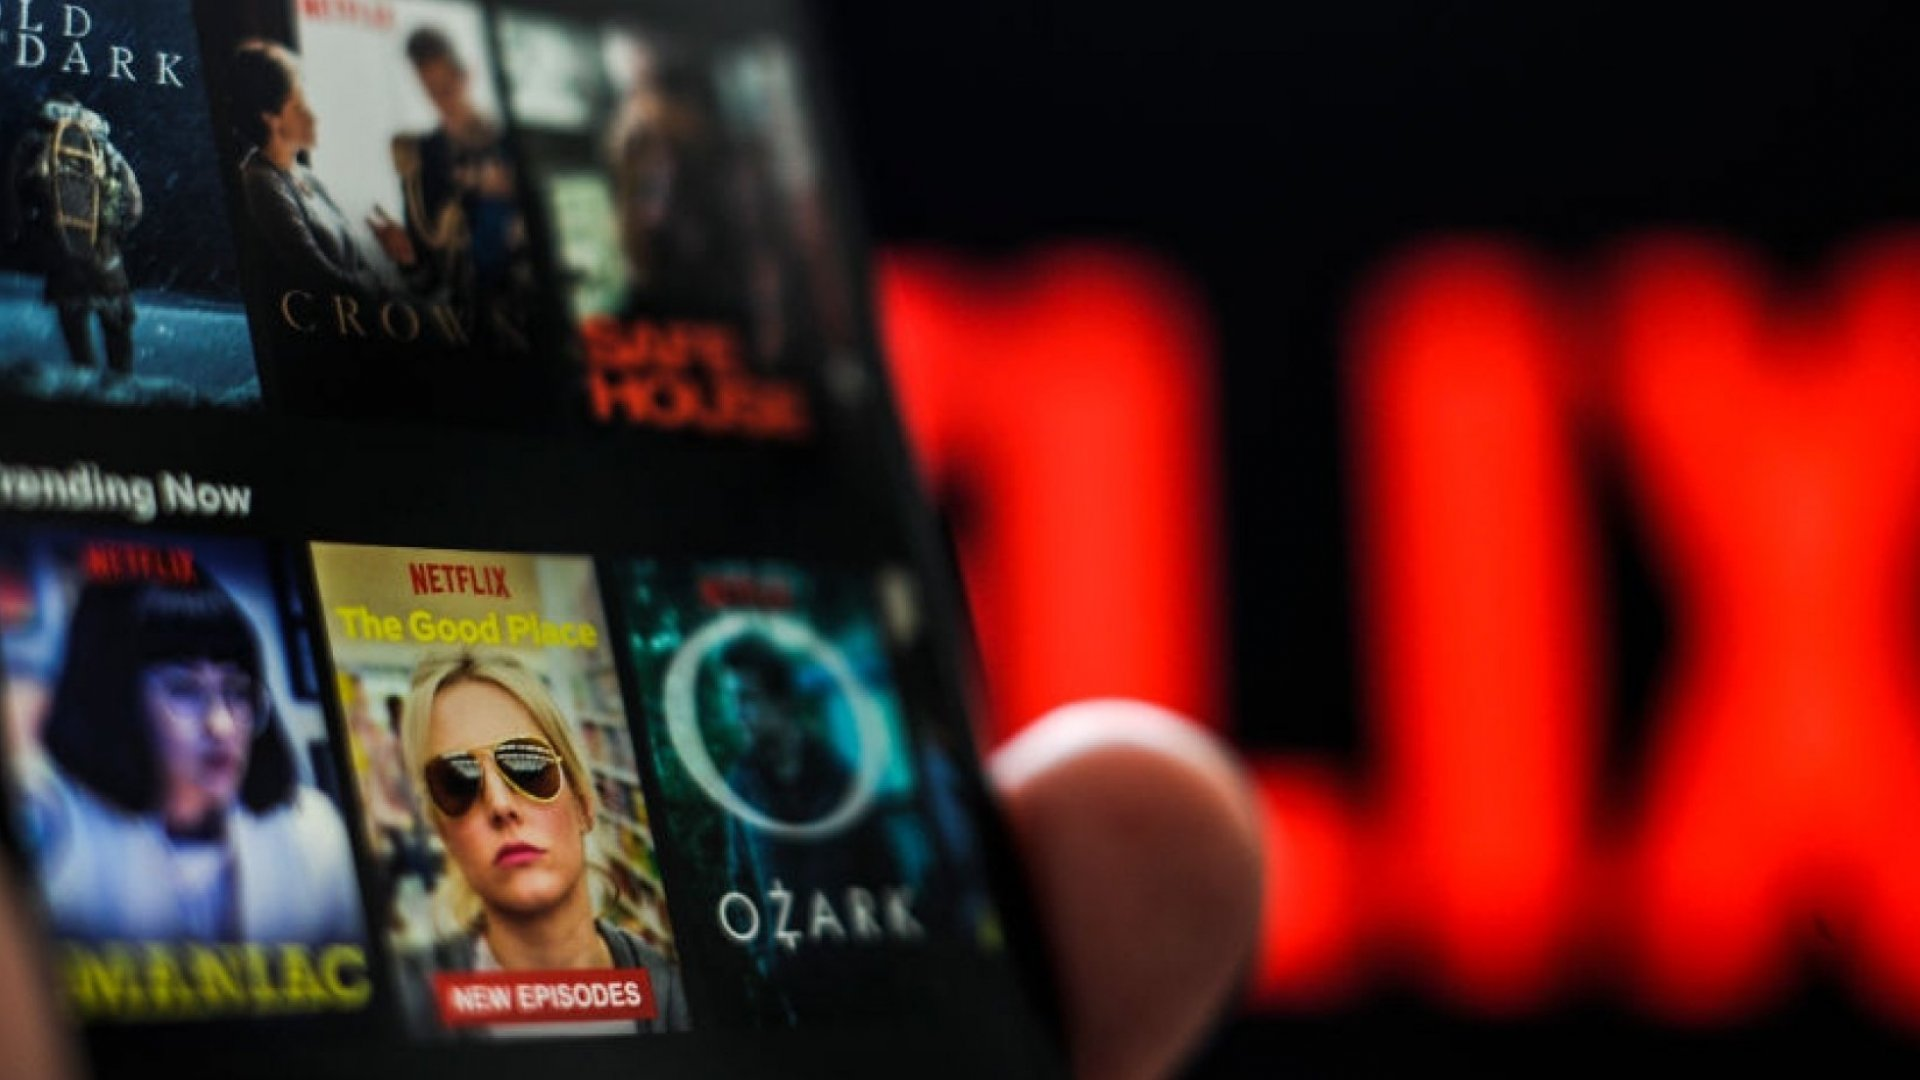 With This Brilliant New Feature, Netflix May Have Just Solved the Biggest Problem With Streaming Video